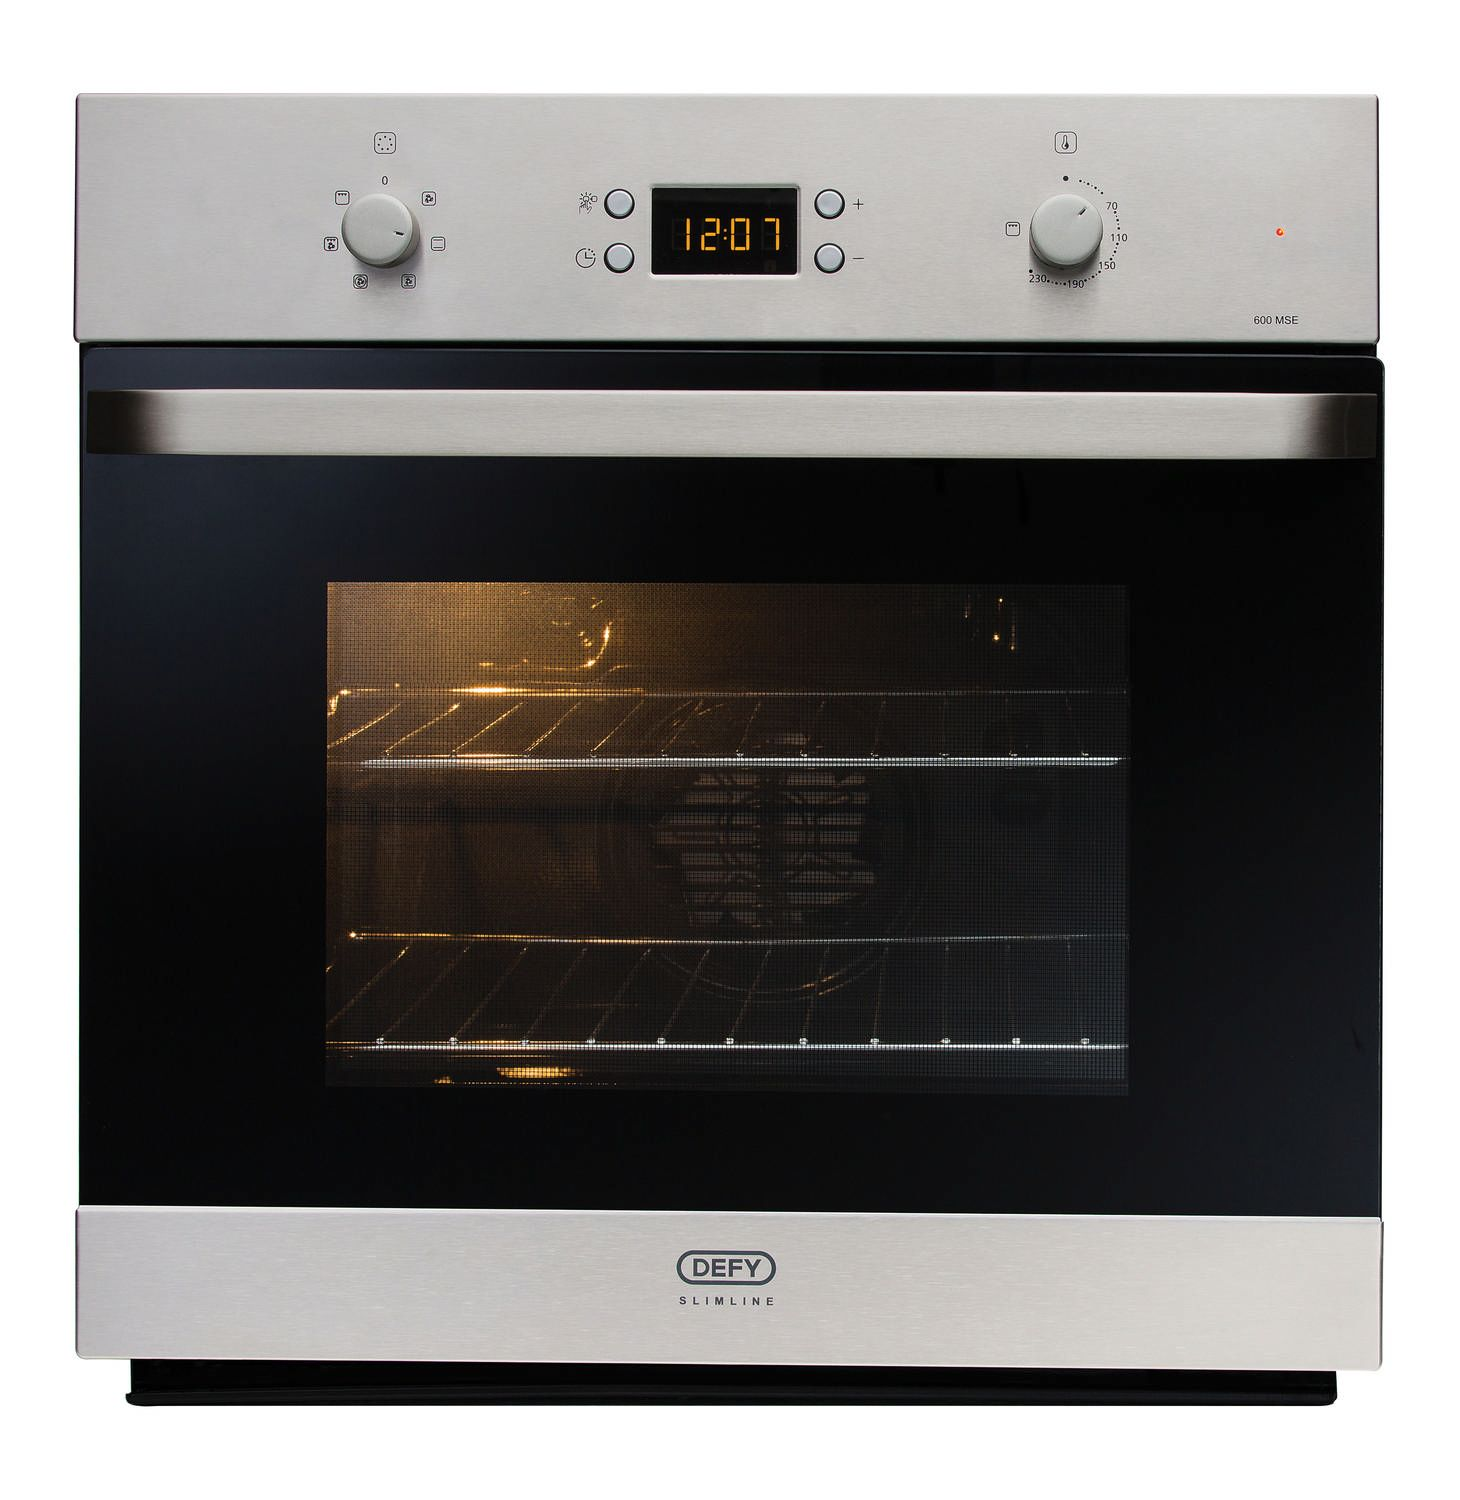 Defy 600mm Mse Slimline Oven Stainless Steel Dbo463 Lowest Prices Specials Online Makro